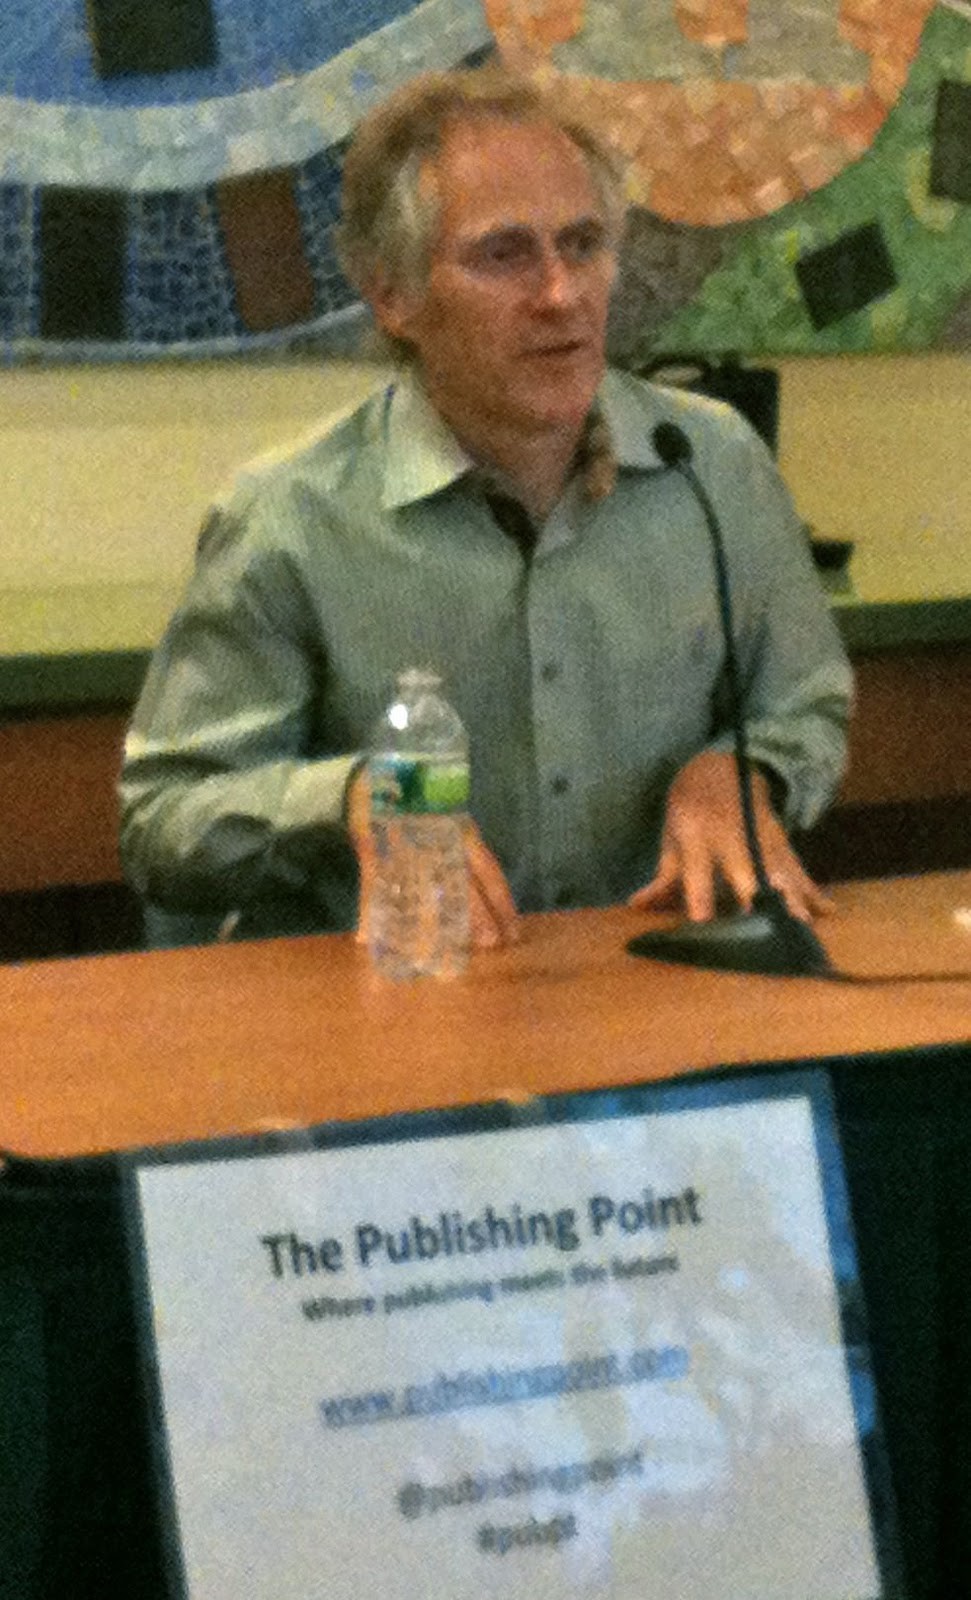 Go To Hellman: Philosopher Tim O'Reilly Lights Up Publishing